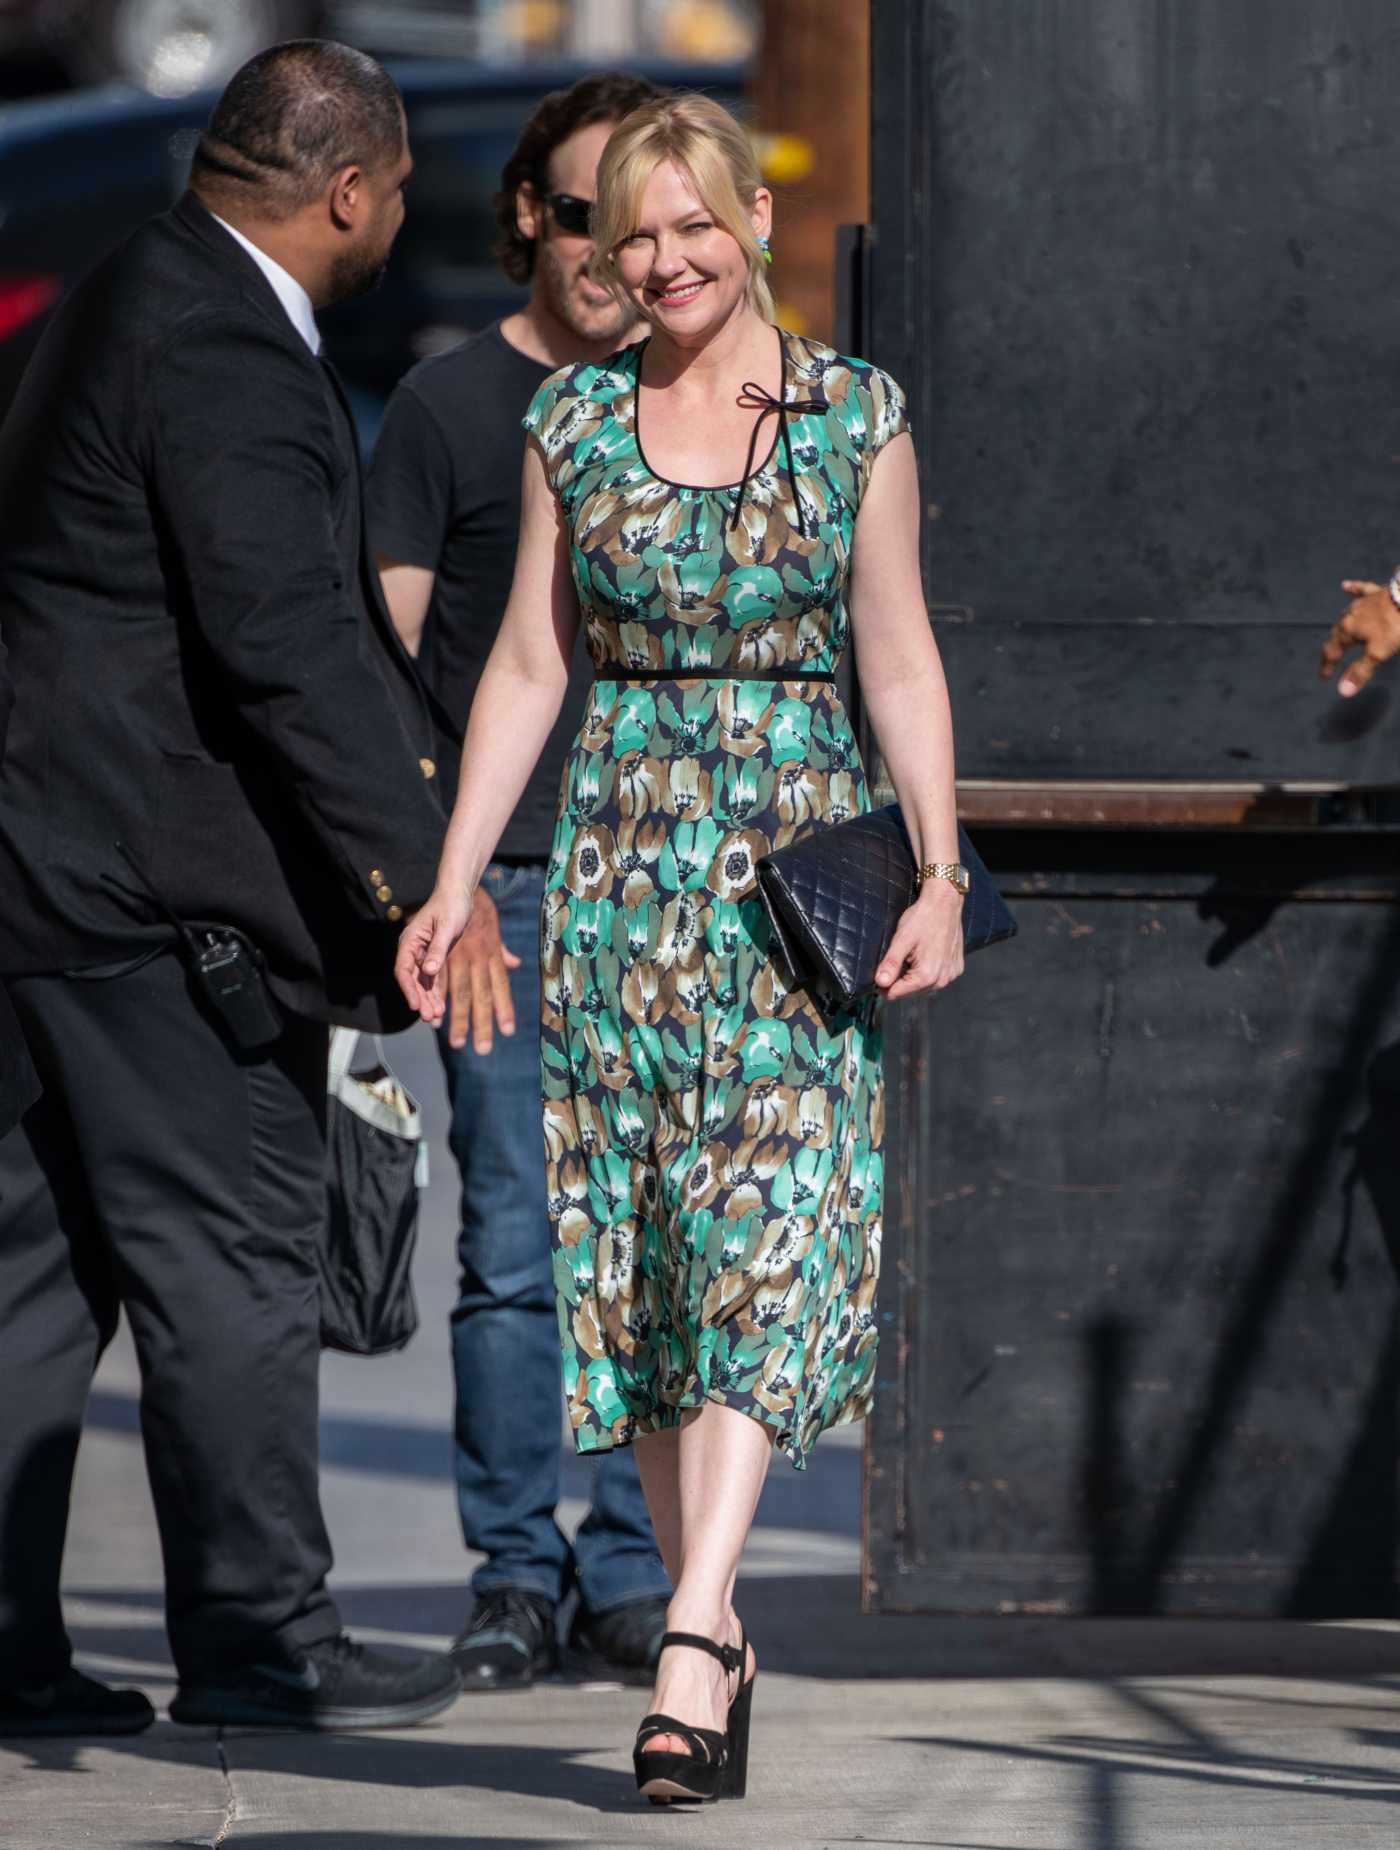 Kirsten Dunst in a Green Floral Dress Visits Jimmy Kimmel Live! in Hollywood 09/05/2019